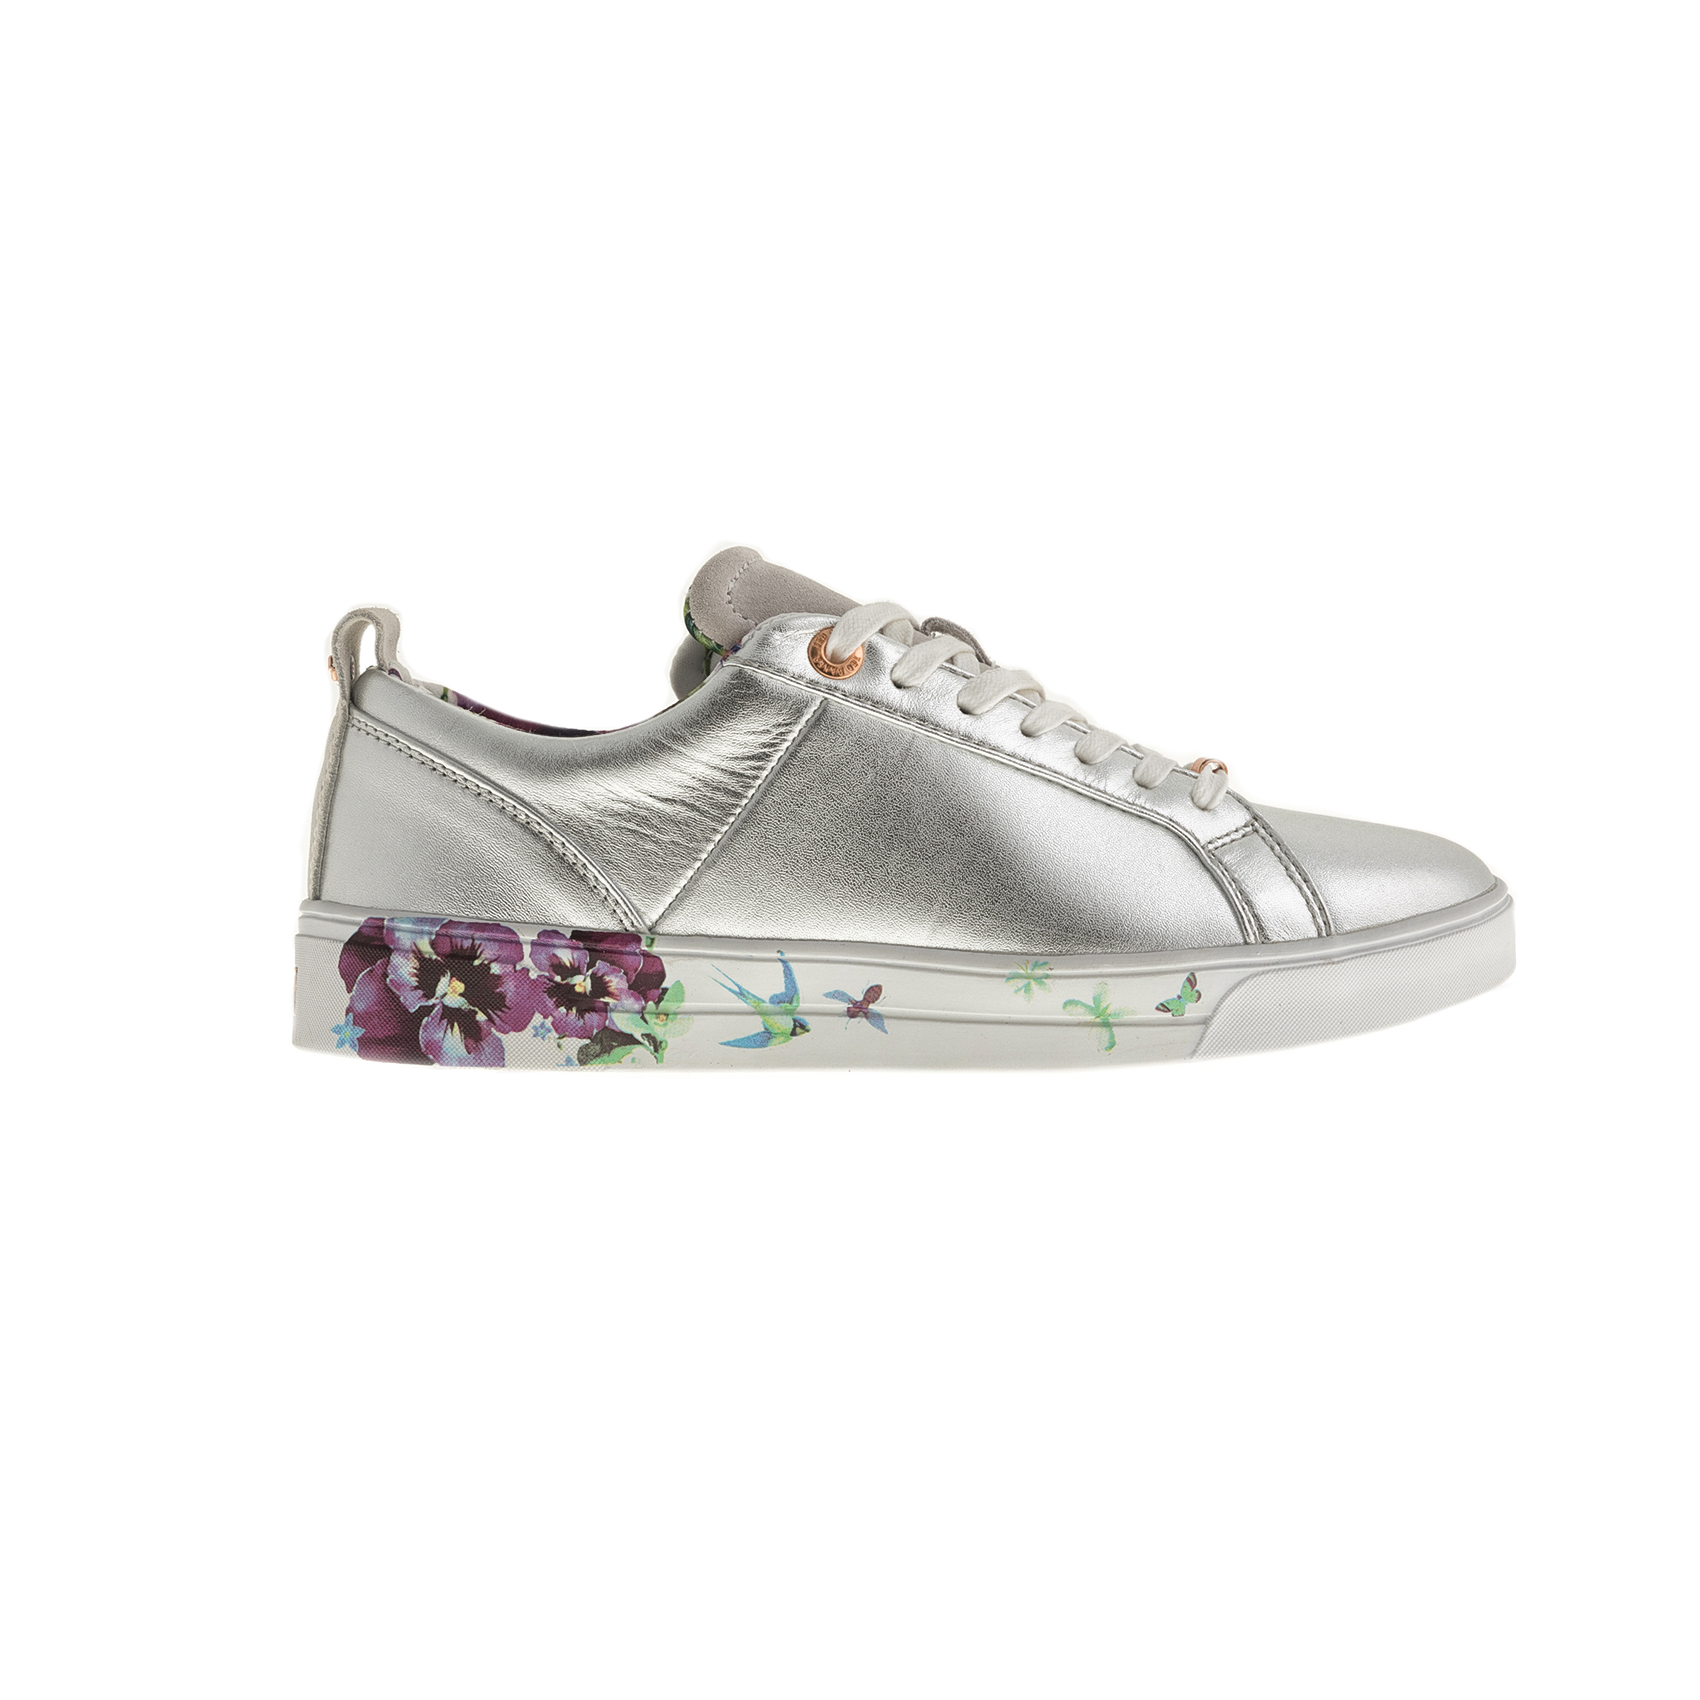 TED BAKER – Γυναικεία sneakers TED BAKER BARRICA ασημί